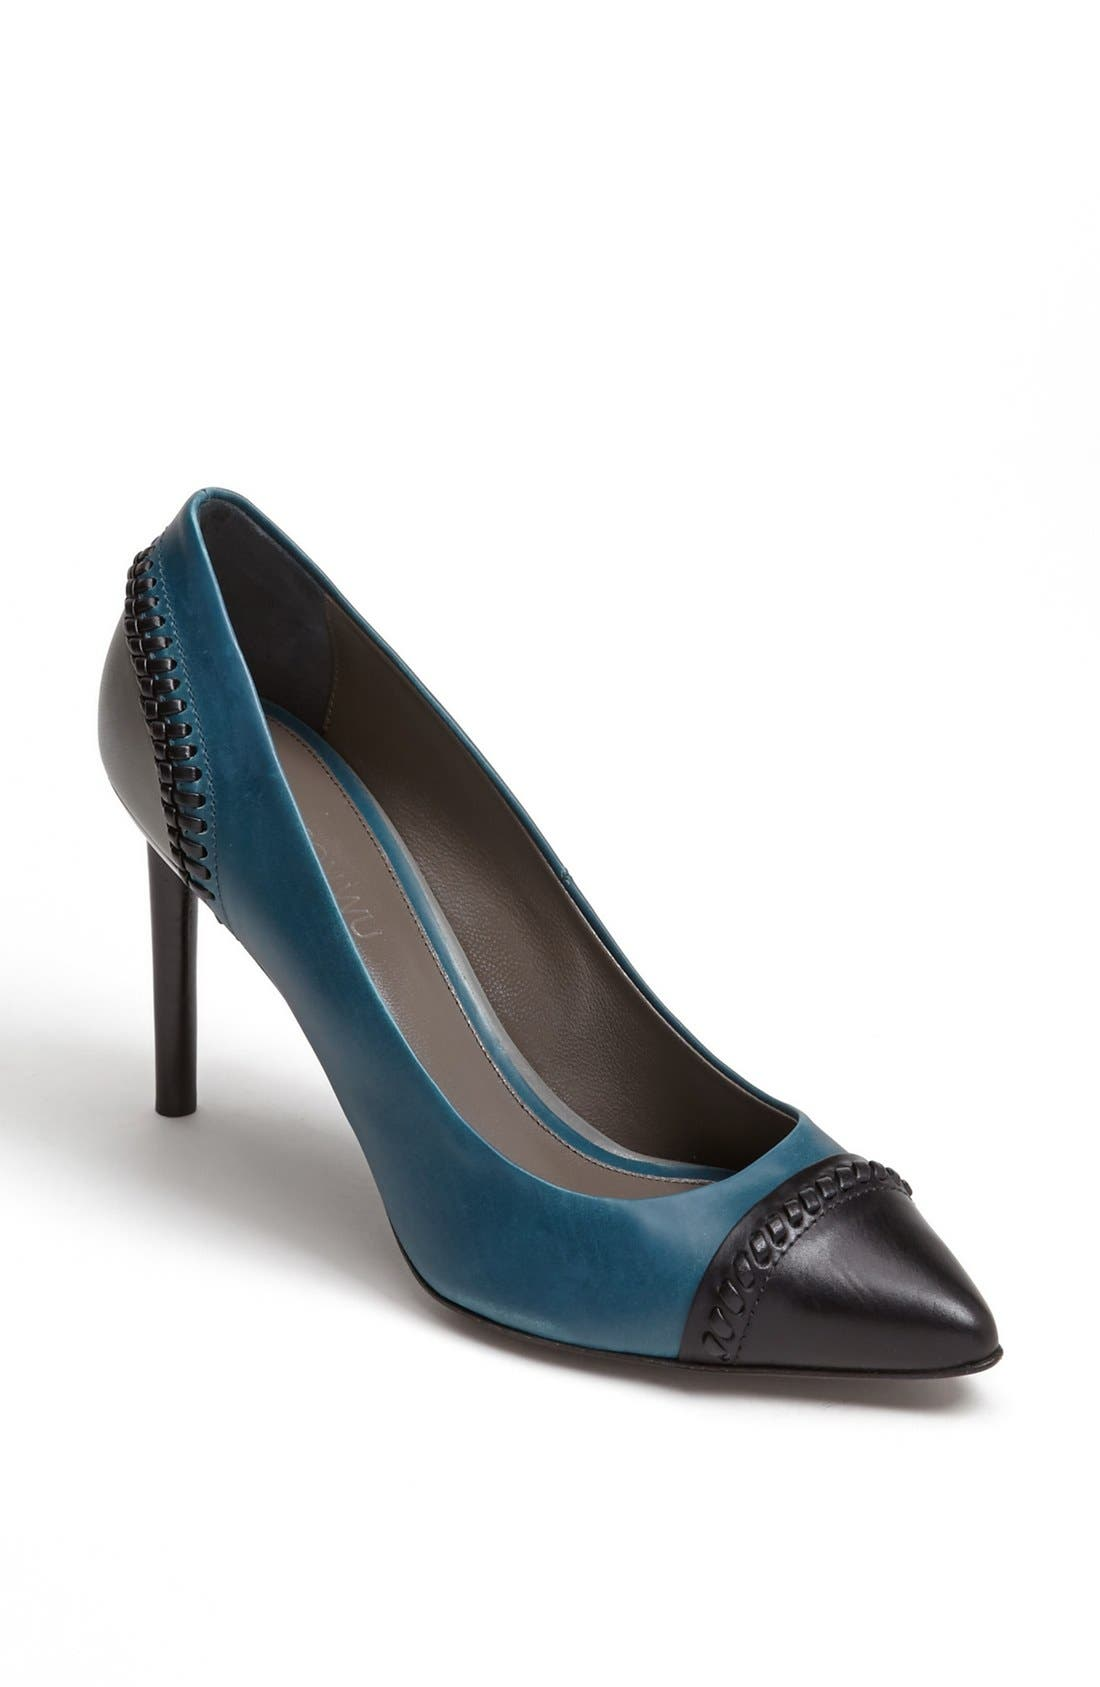 Main Image - Jason Wu 'Lily' Pump